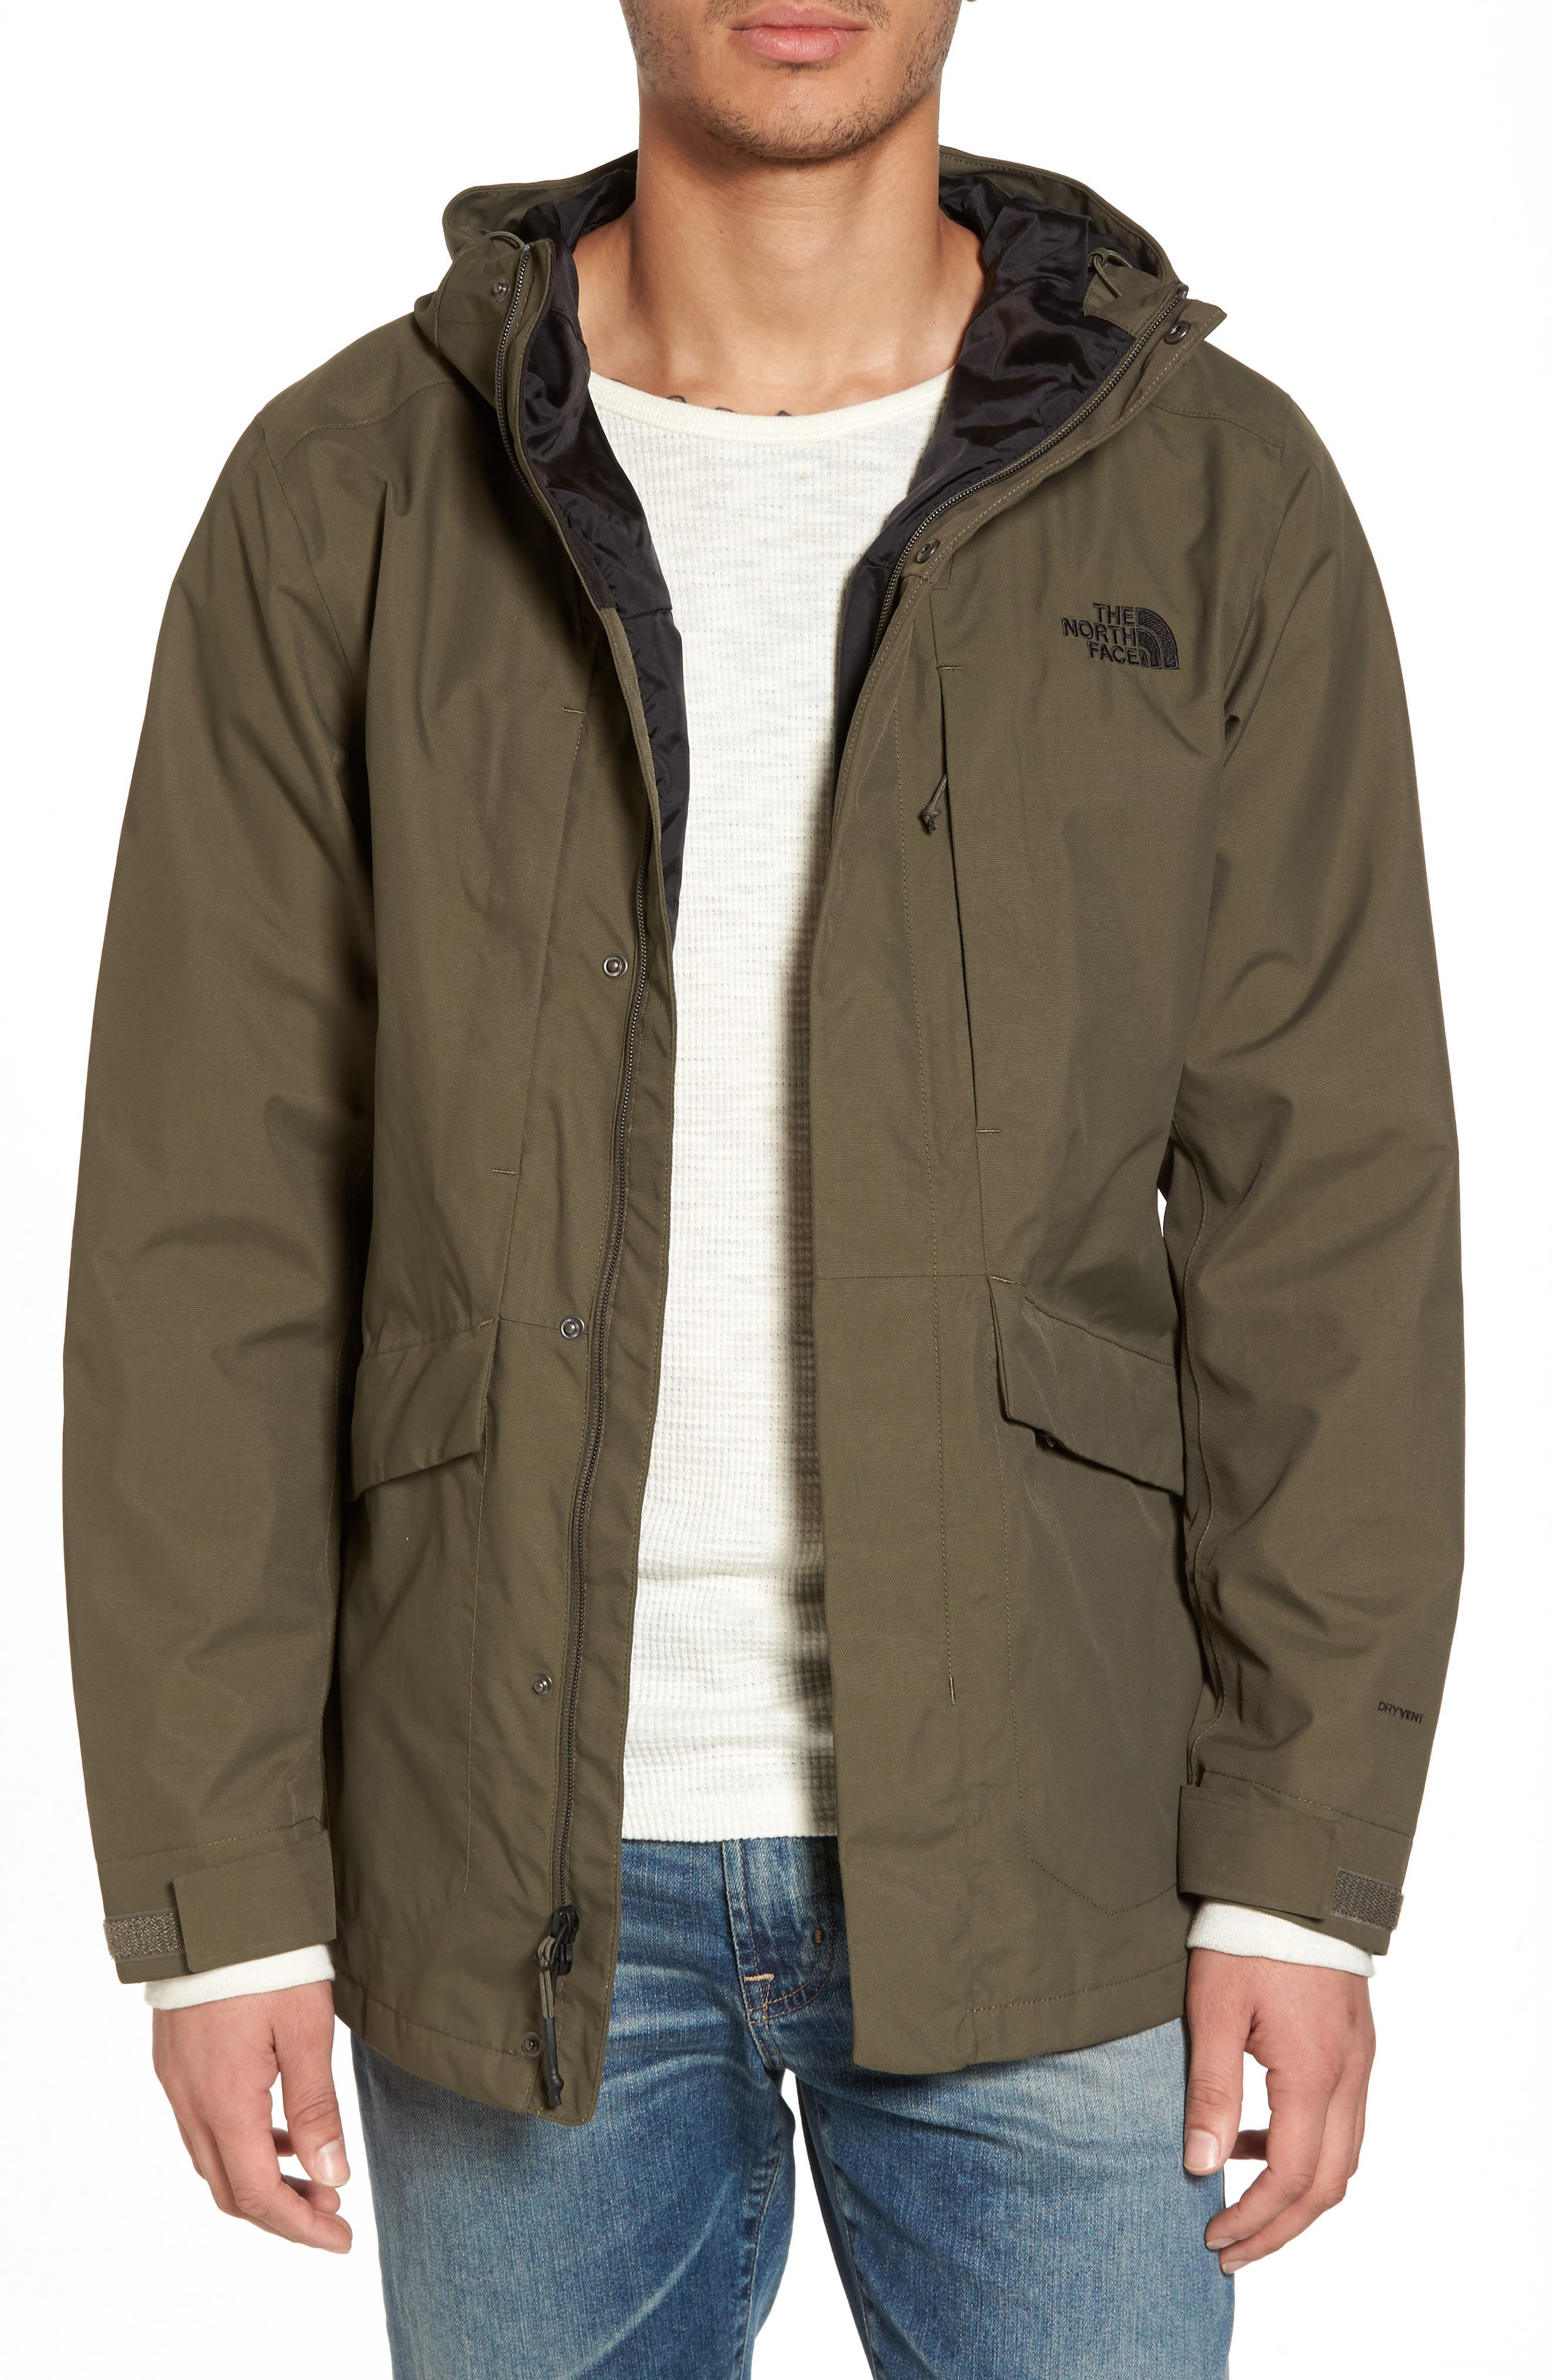 El Misti Trench II Hooded Jacket,                         Main,                         color, NEW TAUPE GREEN